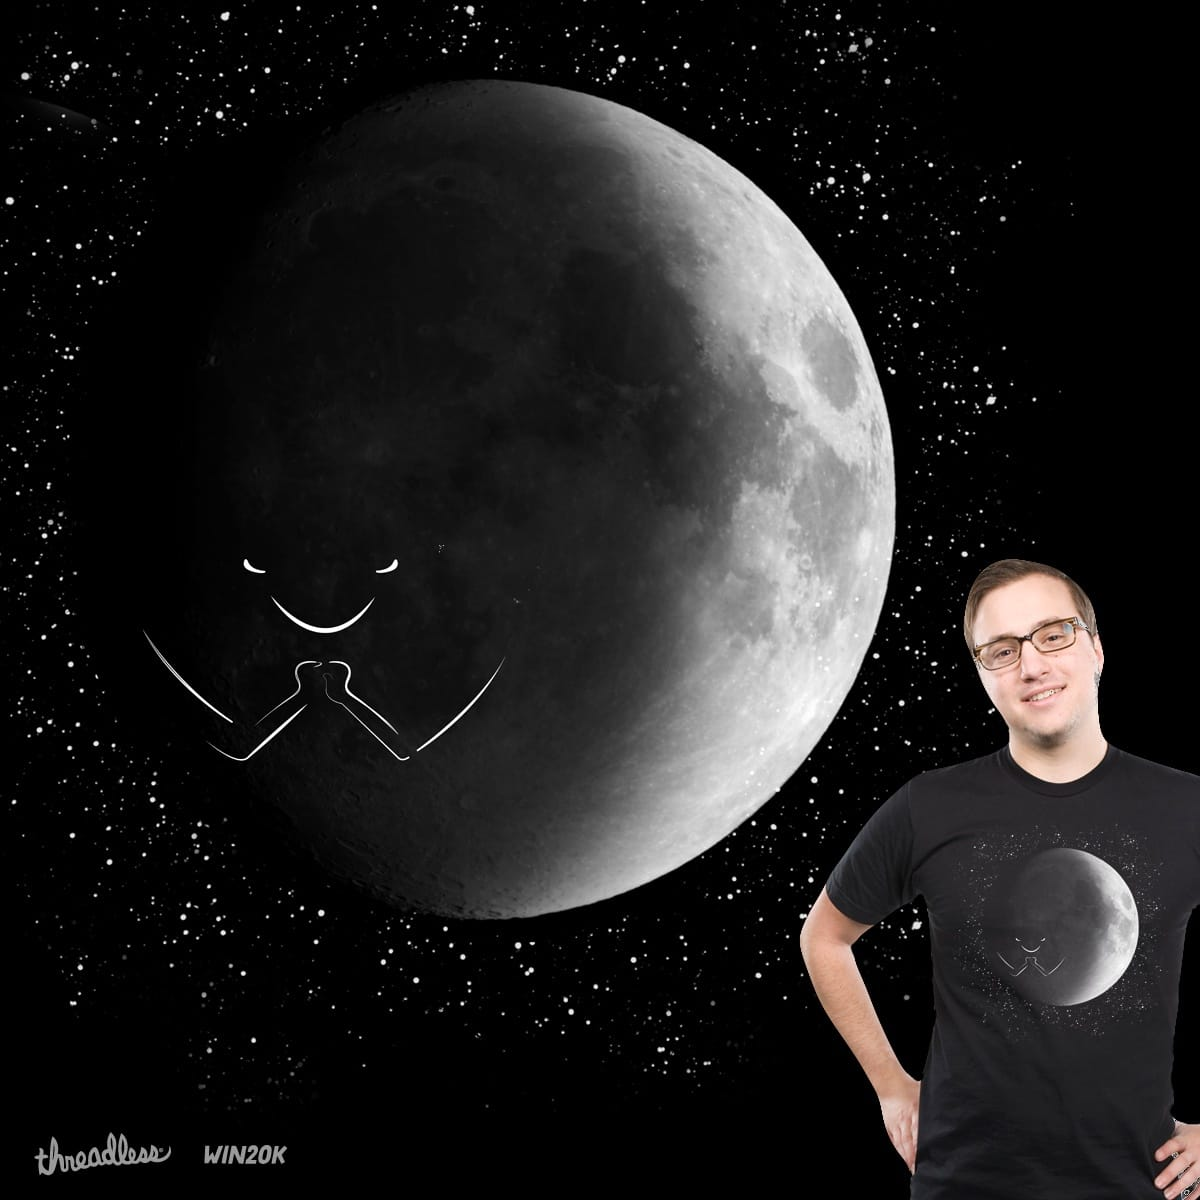 Dark Side Of The Moon by PolySciGuy on Threadless